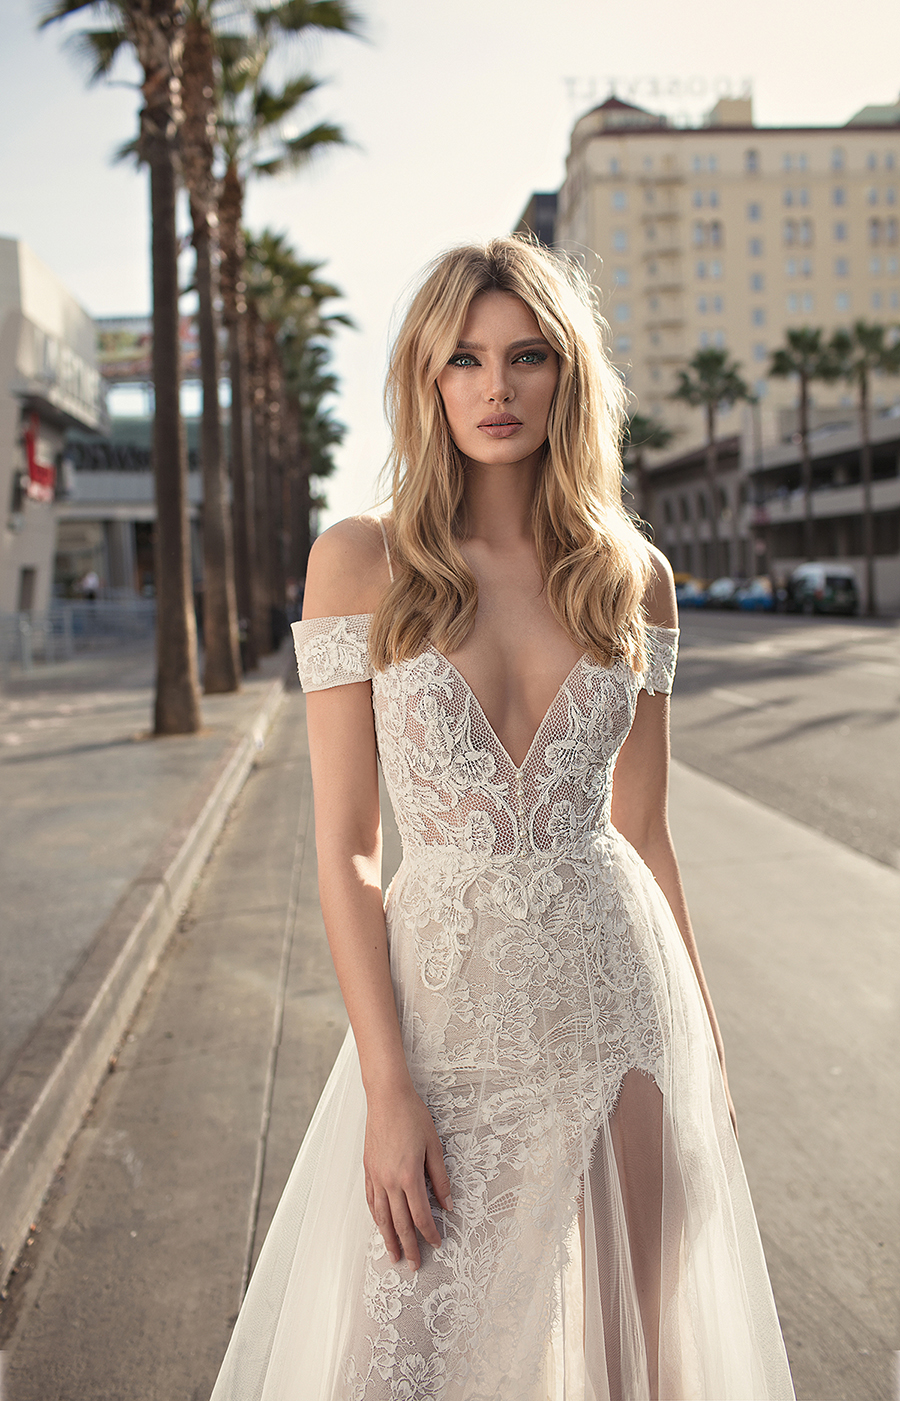 8dc3d441590a Sexy, edgy and bold - these are just some of the words to describe the 2019  Muse by Berta collection. Shot against the backdrop of the bustling streets  of ...